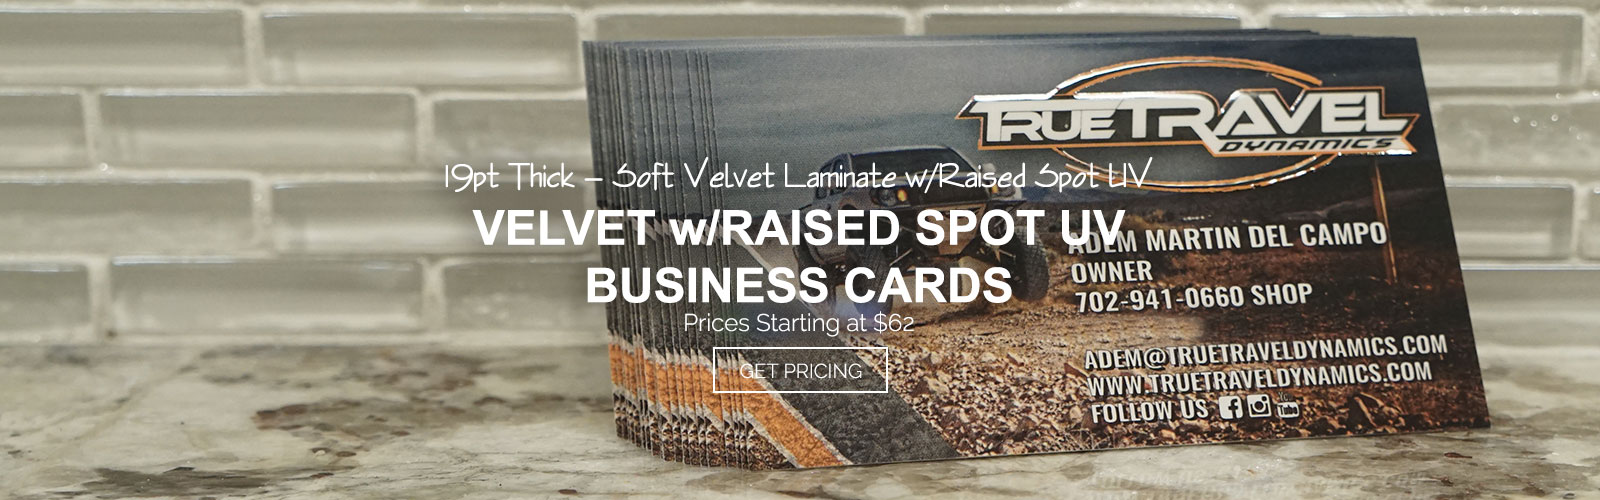 Velvet w/ Raised Spot UV Business Cards